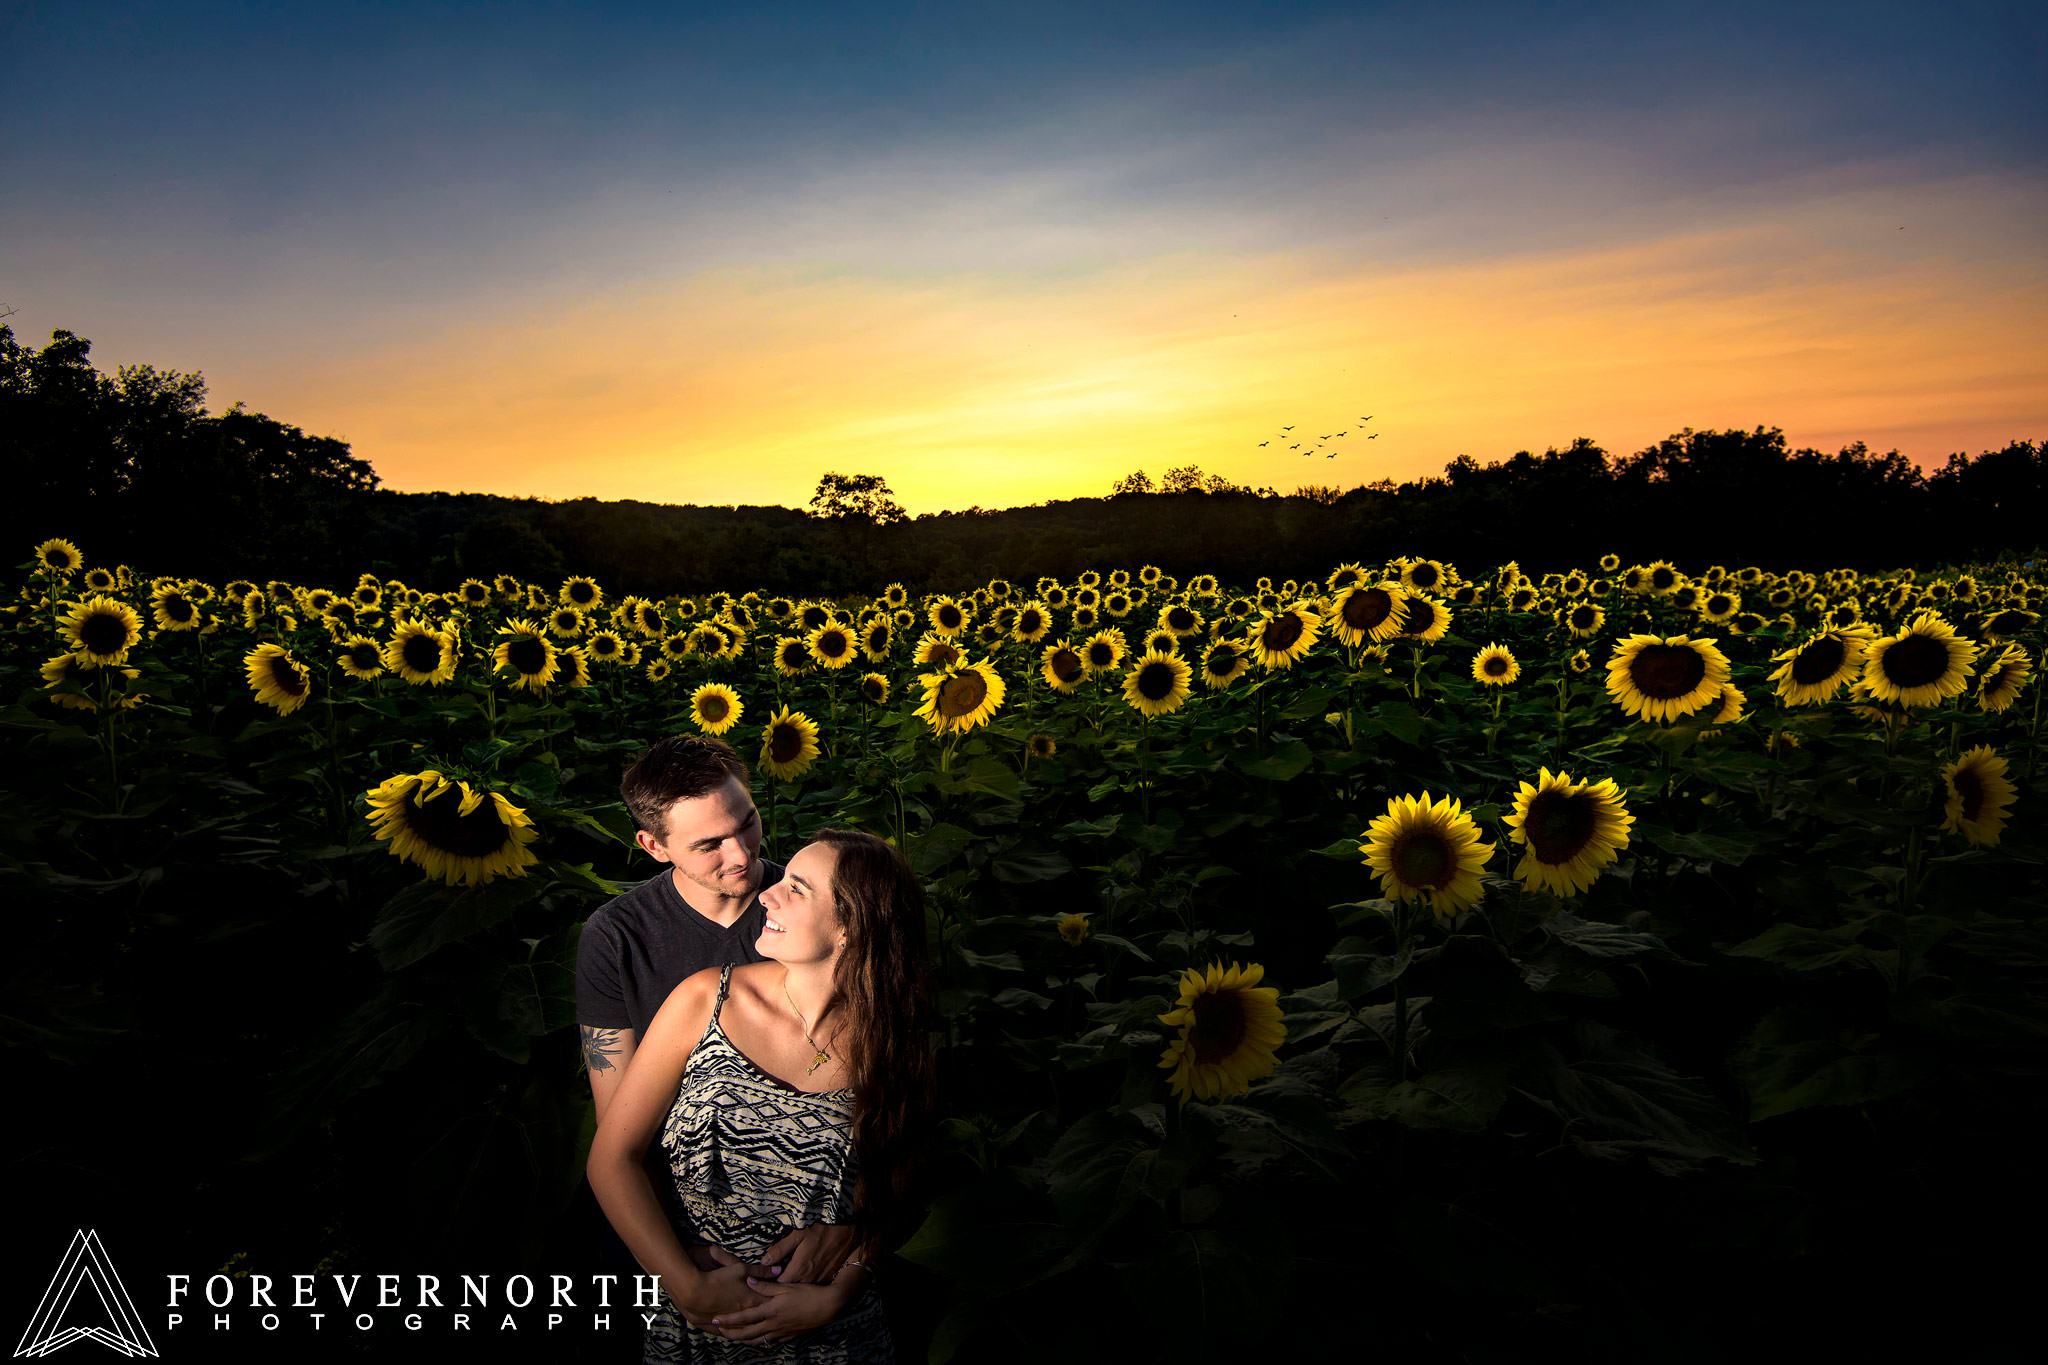 Ennis-Sussex-Sunflower-Maze-Engagement-Photos-13.JPG